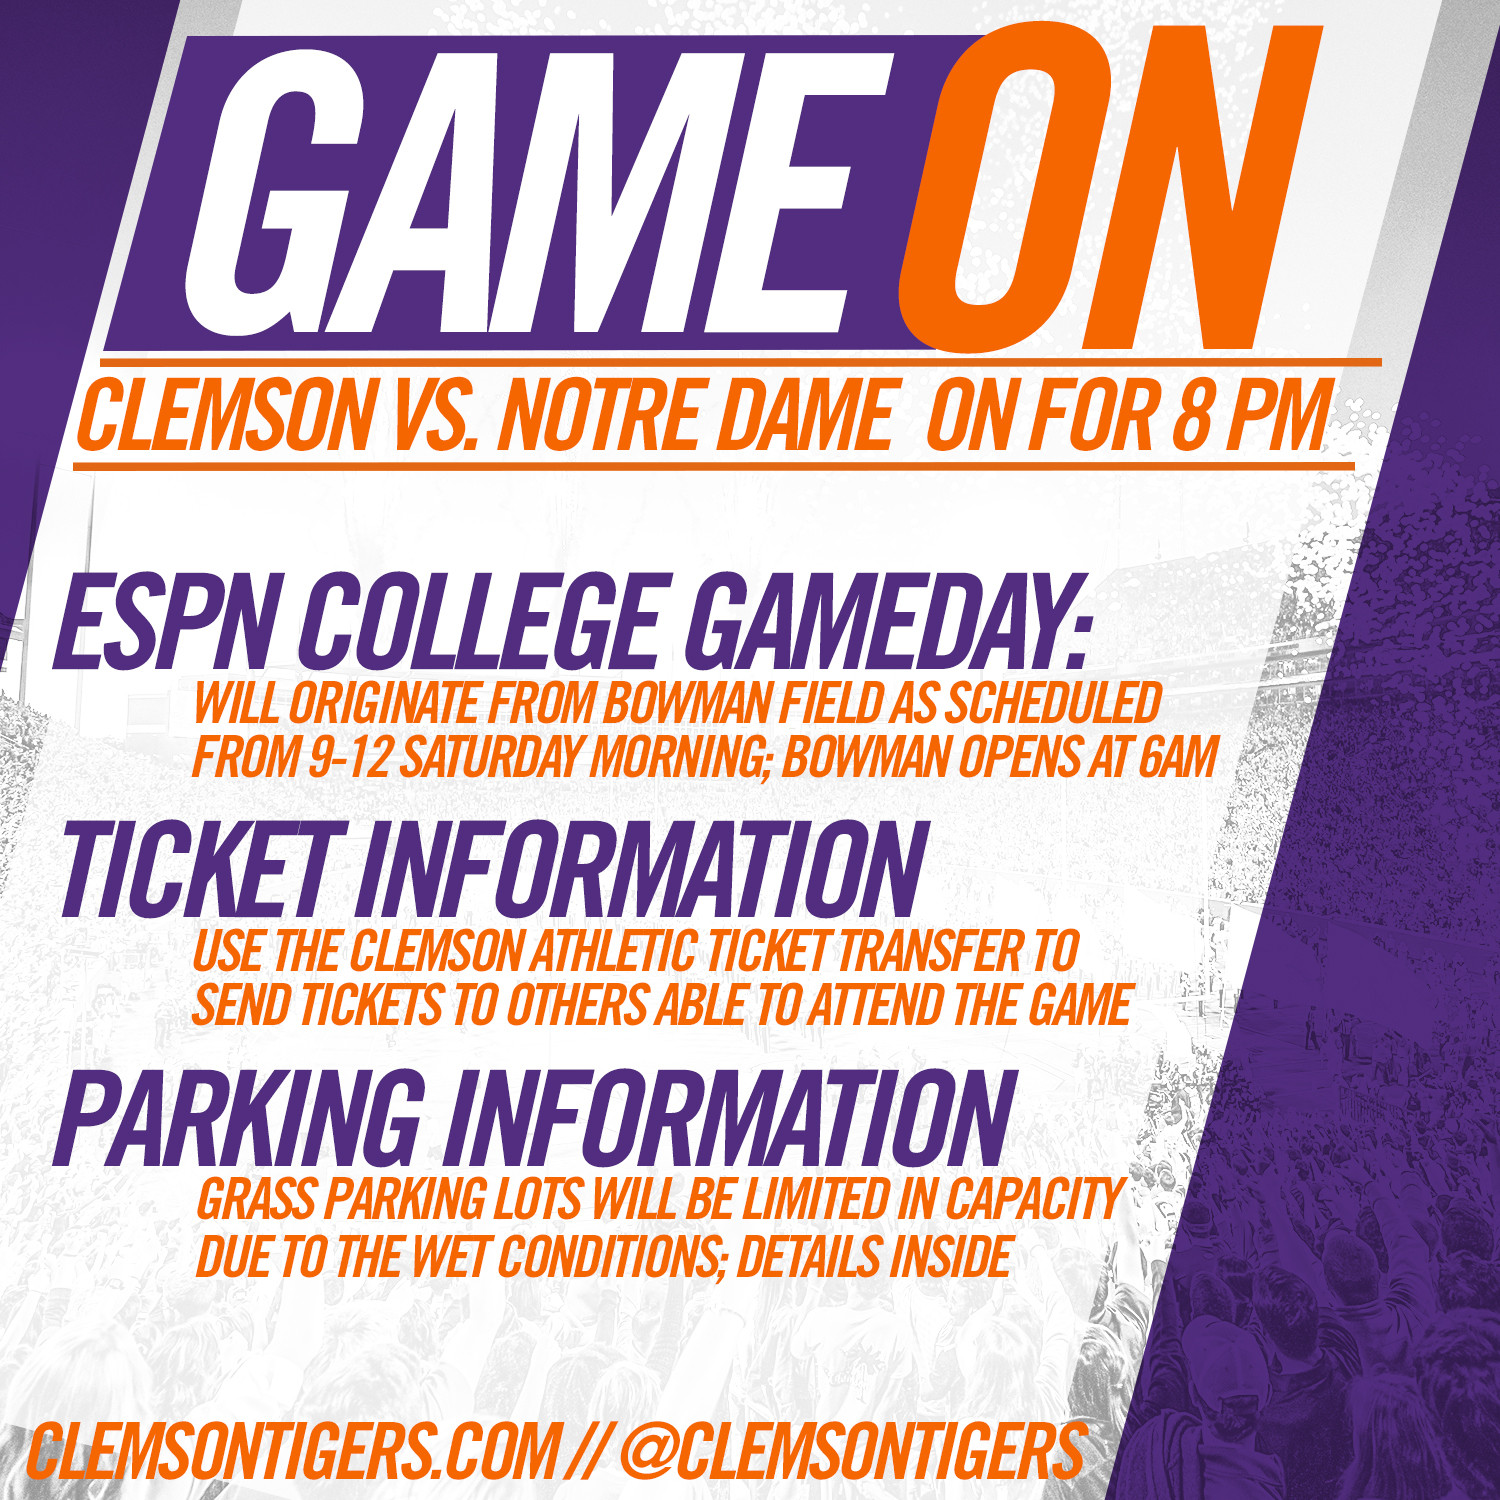 Clemson-Notre Dame on as Scheduled